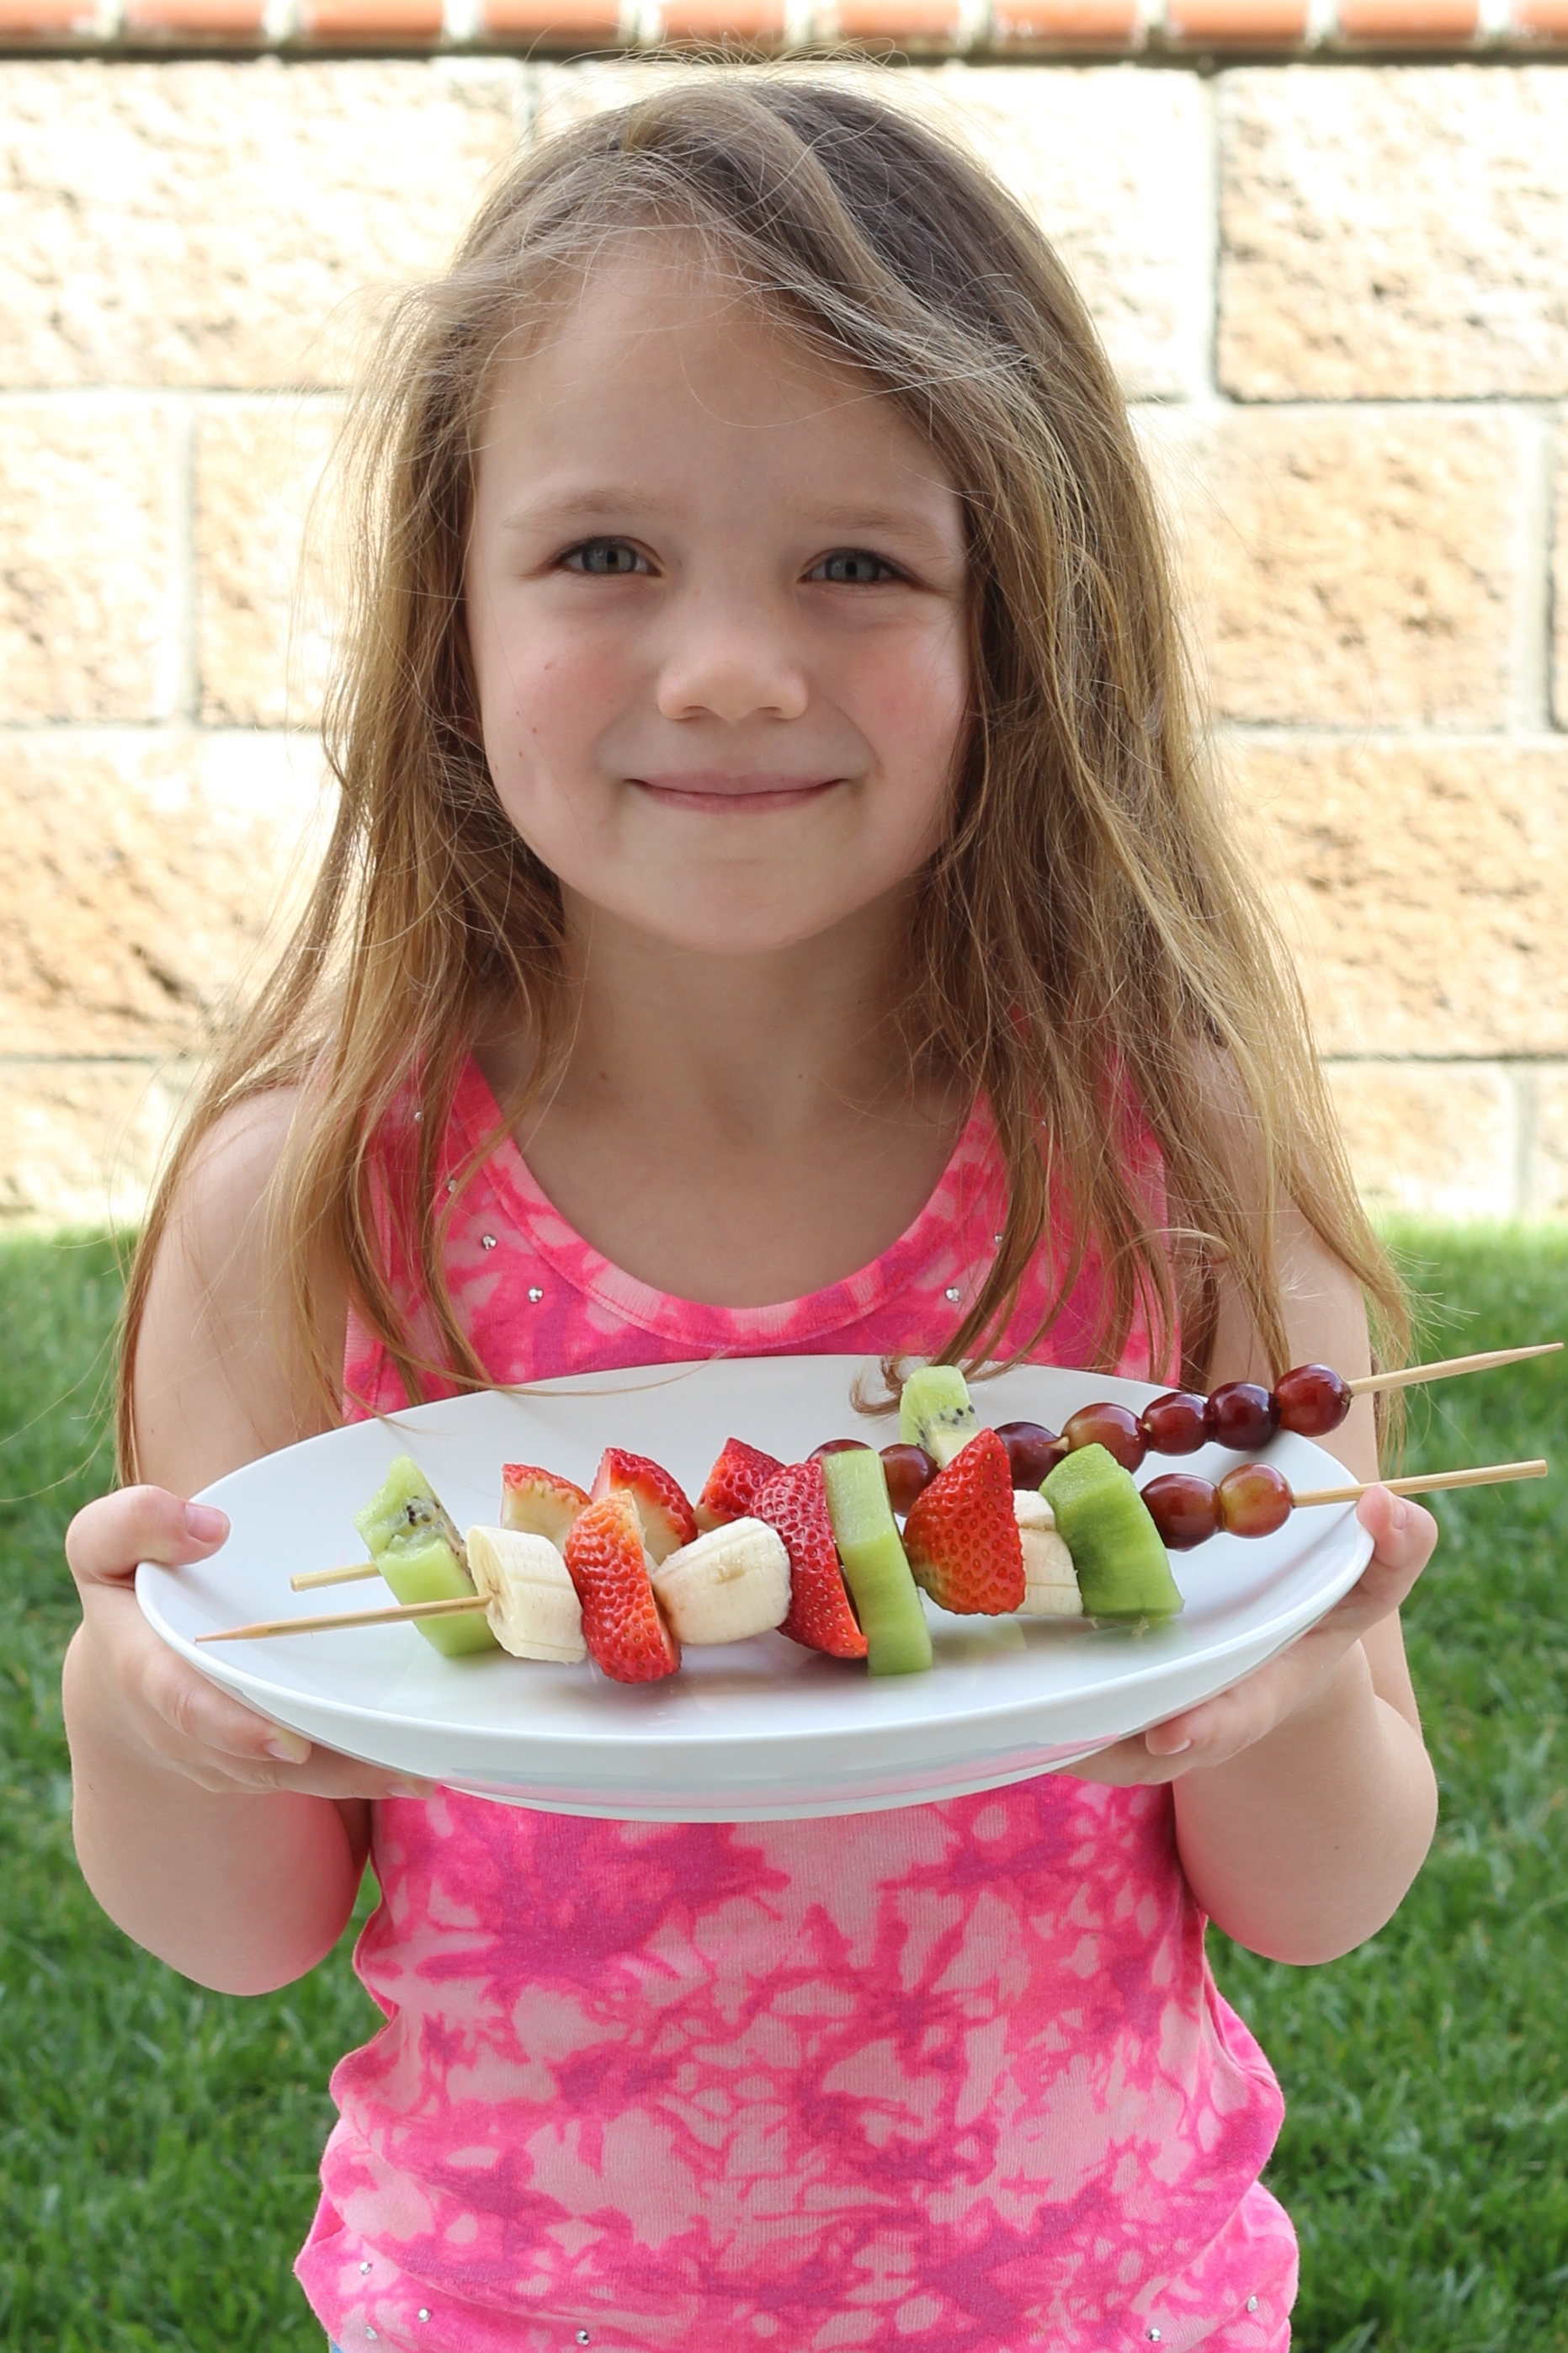 A little girl holding a platter of fruit skewers